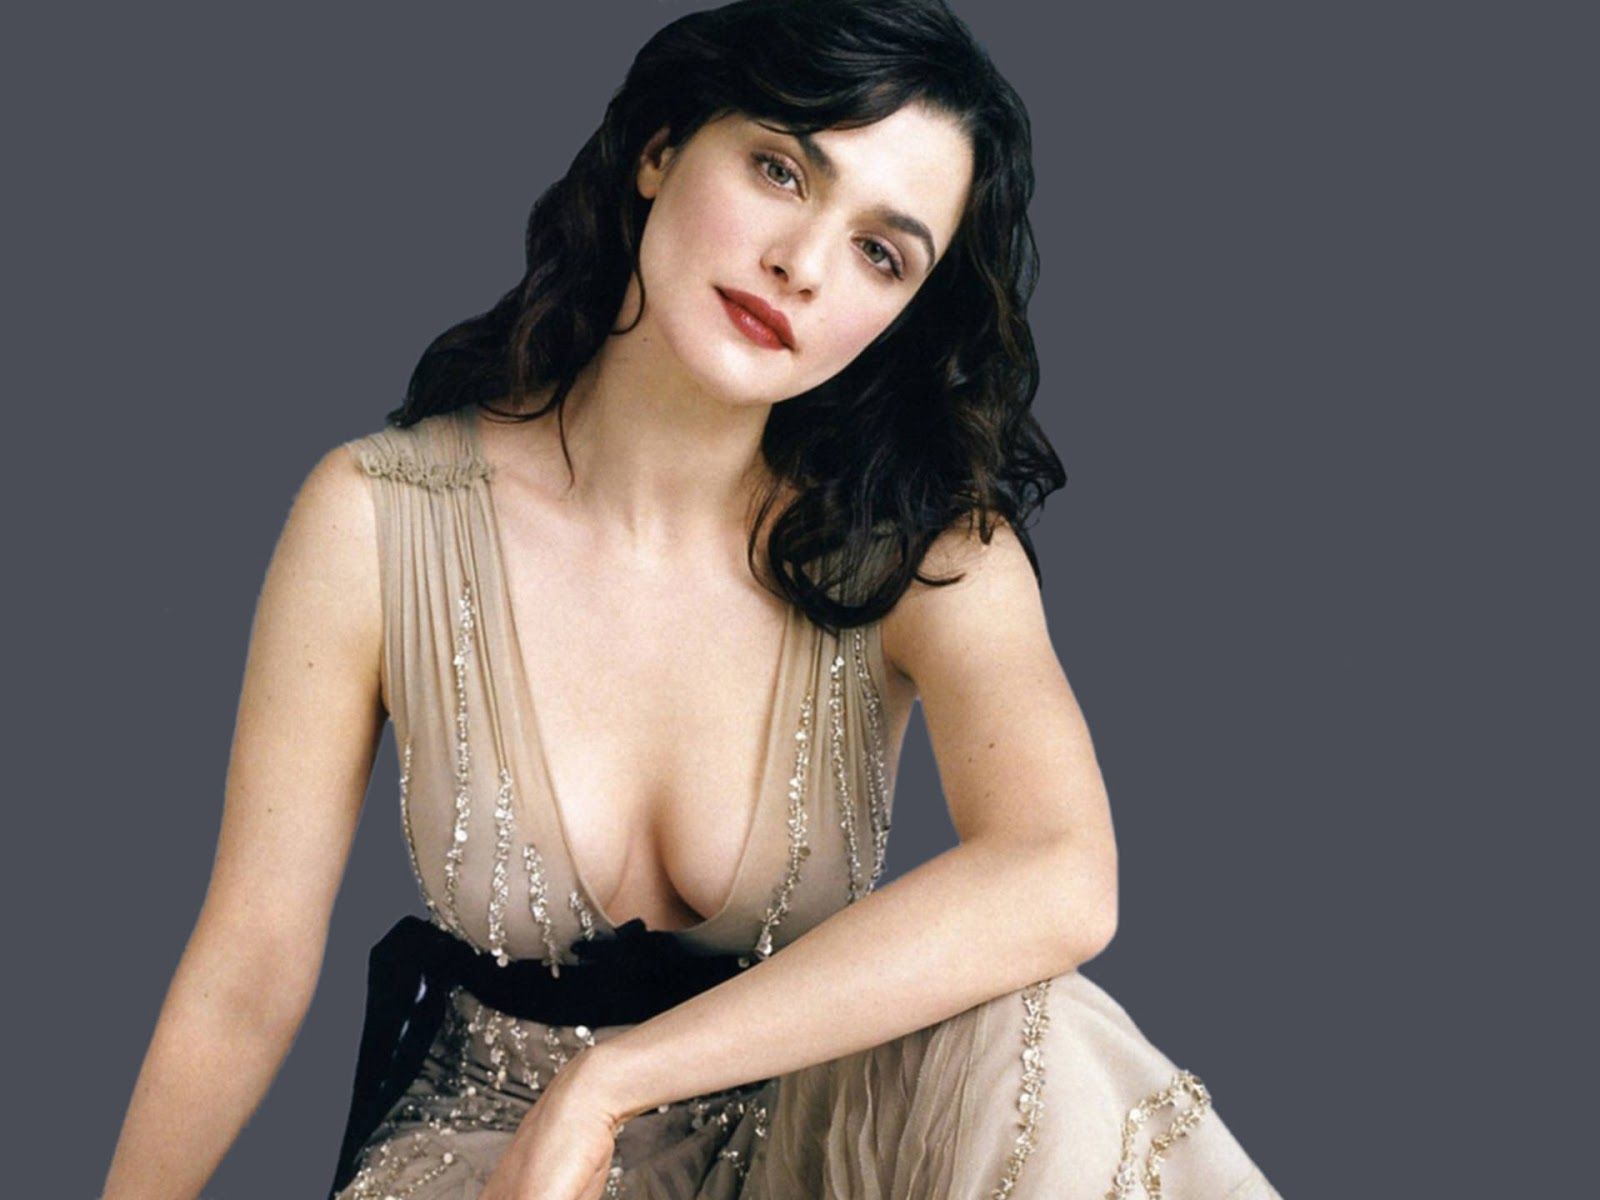 Congratulate, your Rachel weisz naked picture